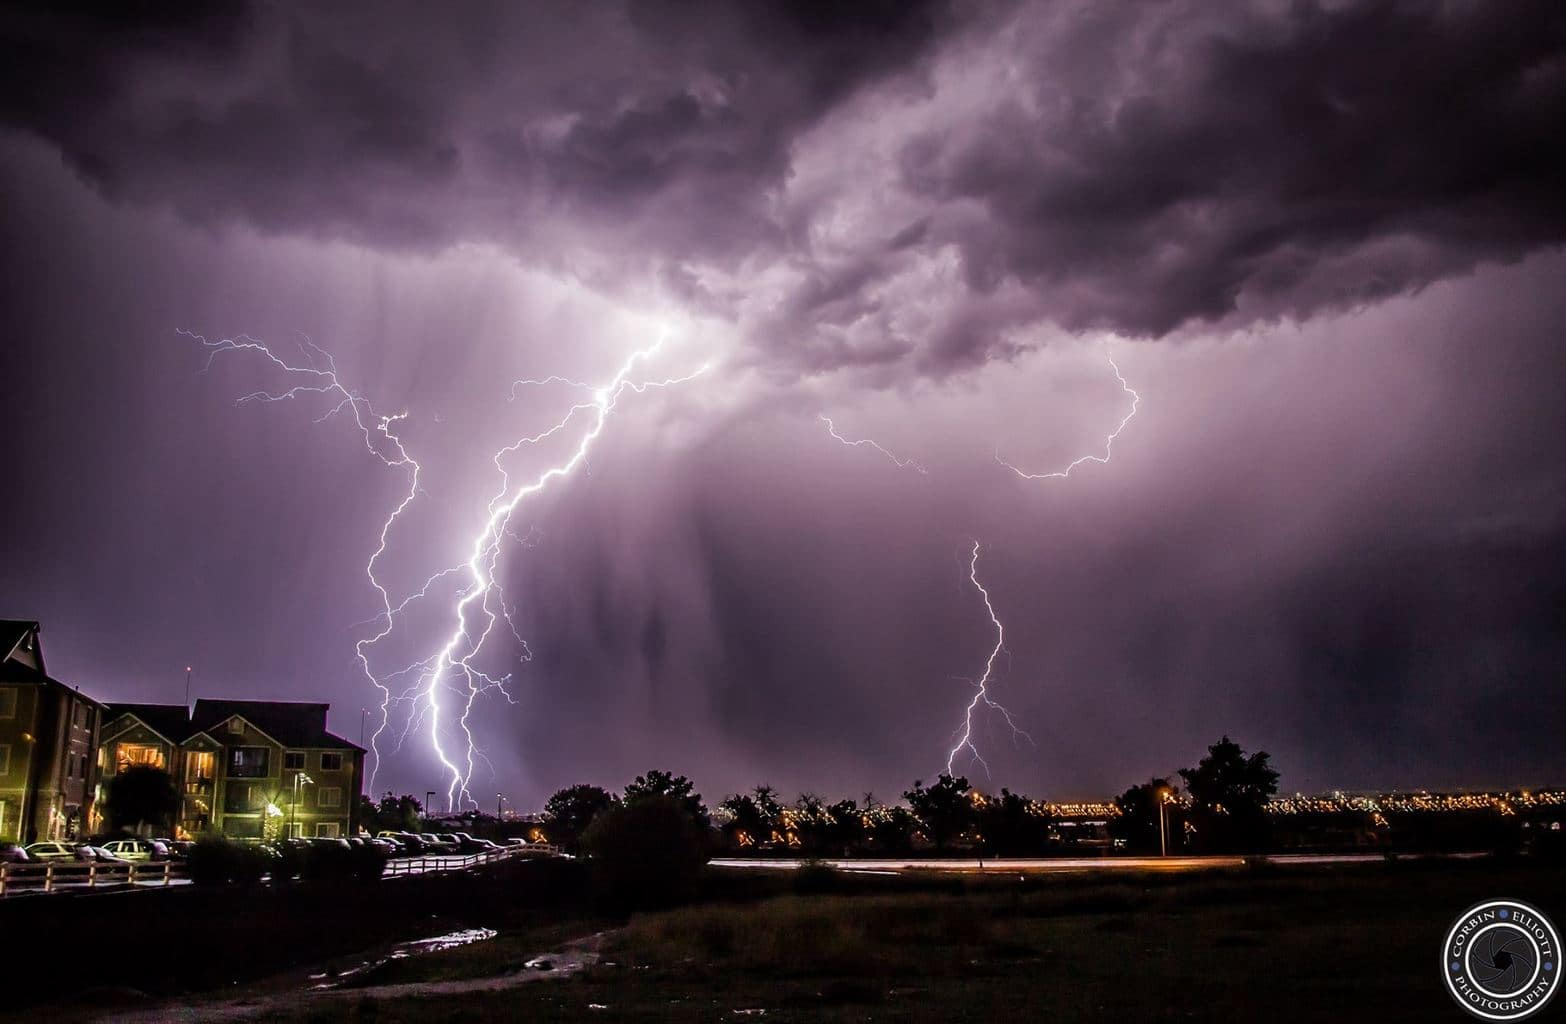 Thank you for adding me to the community. Not a Twister but here is a shot from last weekends Storm Cell that barreled through our neighborhood in Colorado. EXIF Data Camera Canon EOS 50D Lens 17-50mm Focal Length 17mm Exposure 1.6s F Number f/6.3 ISO 200 Camera make Canon Flash Not used